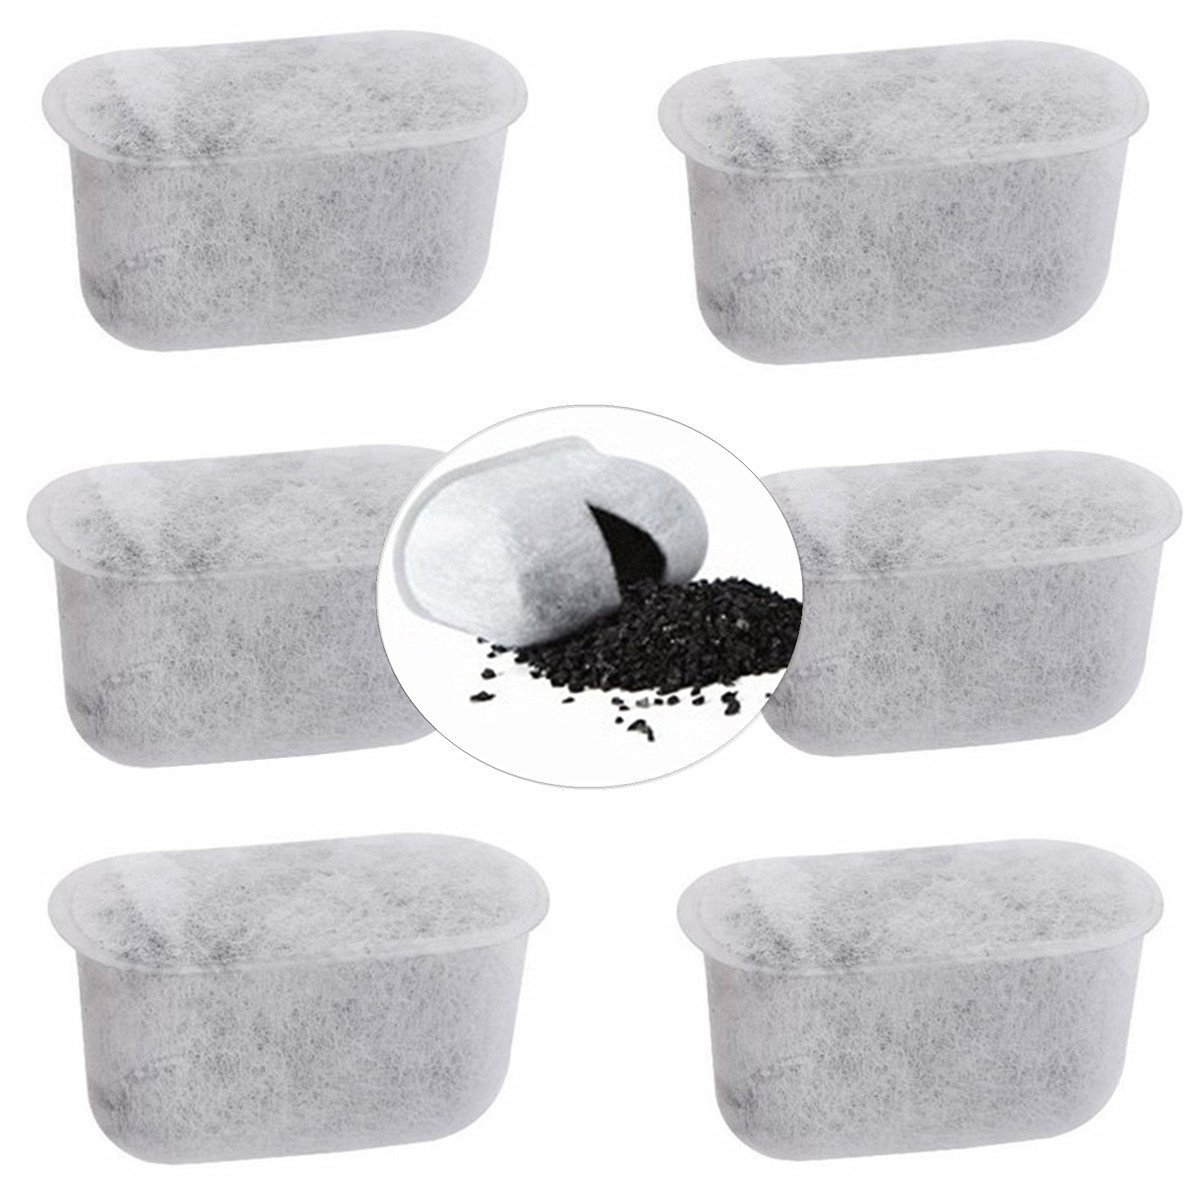 Set of 6 Replacement Charcoal Water Filters for Cuisinart Coffee Maker